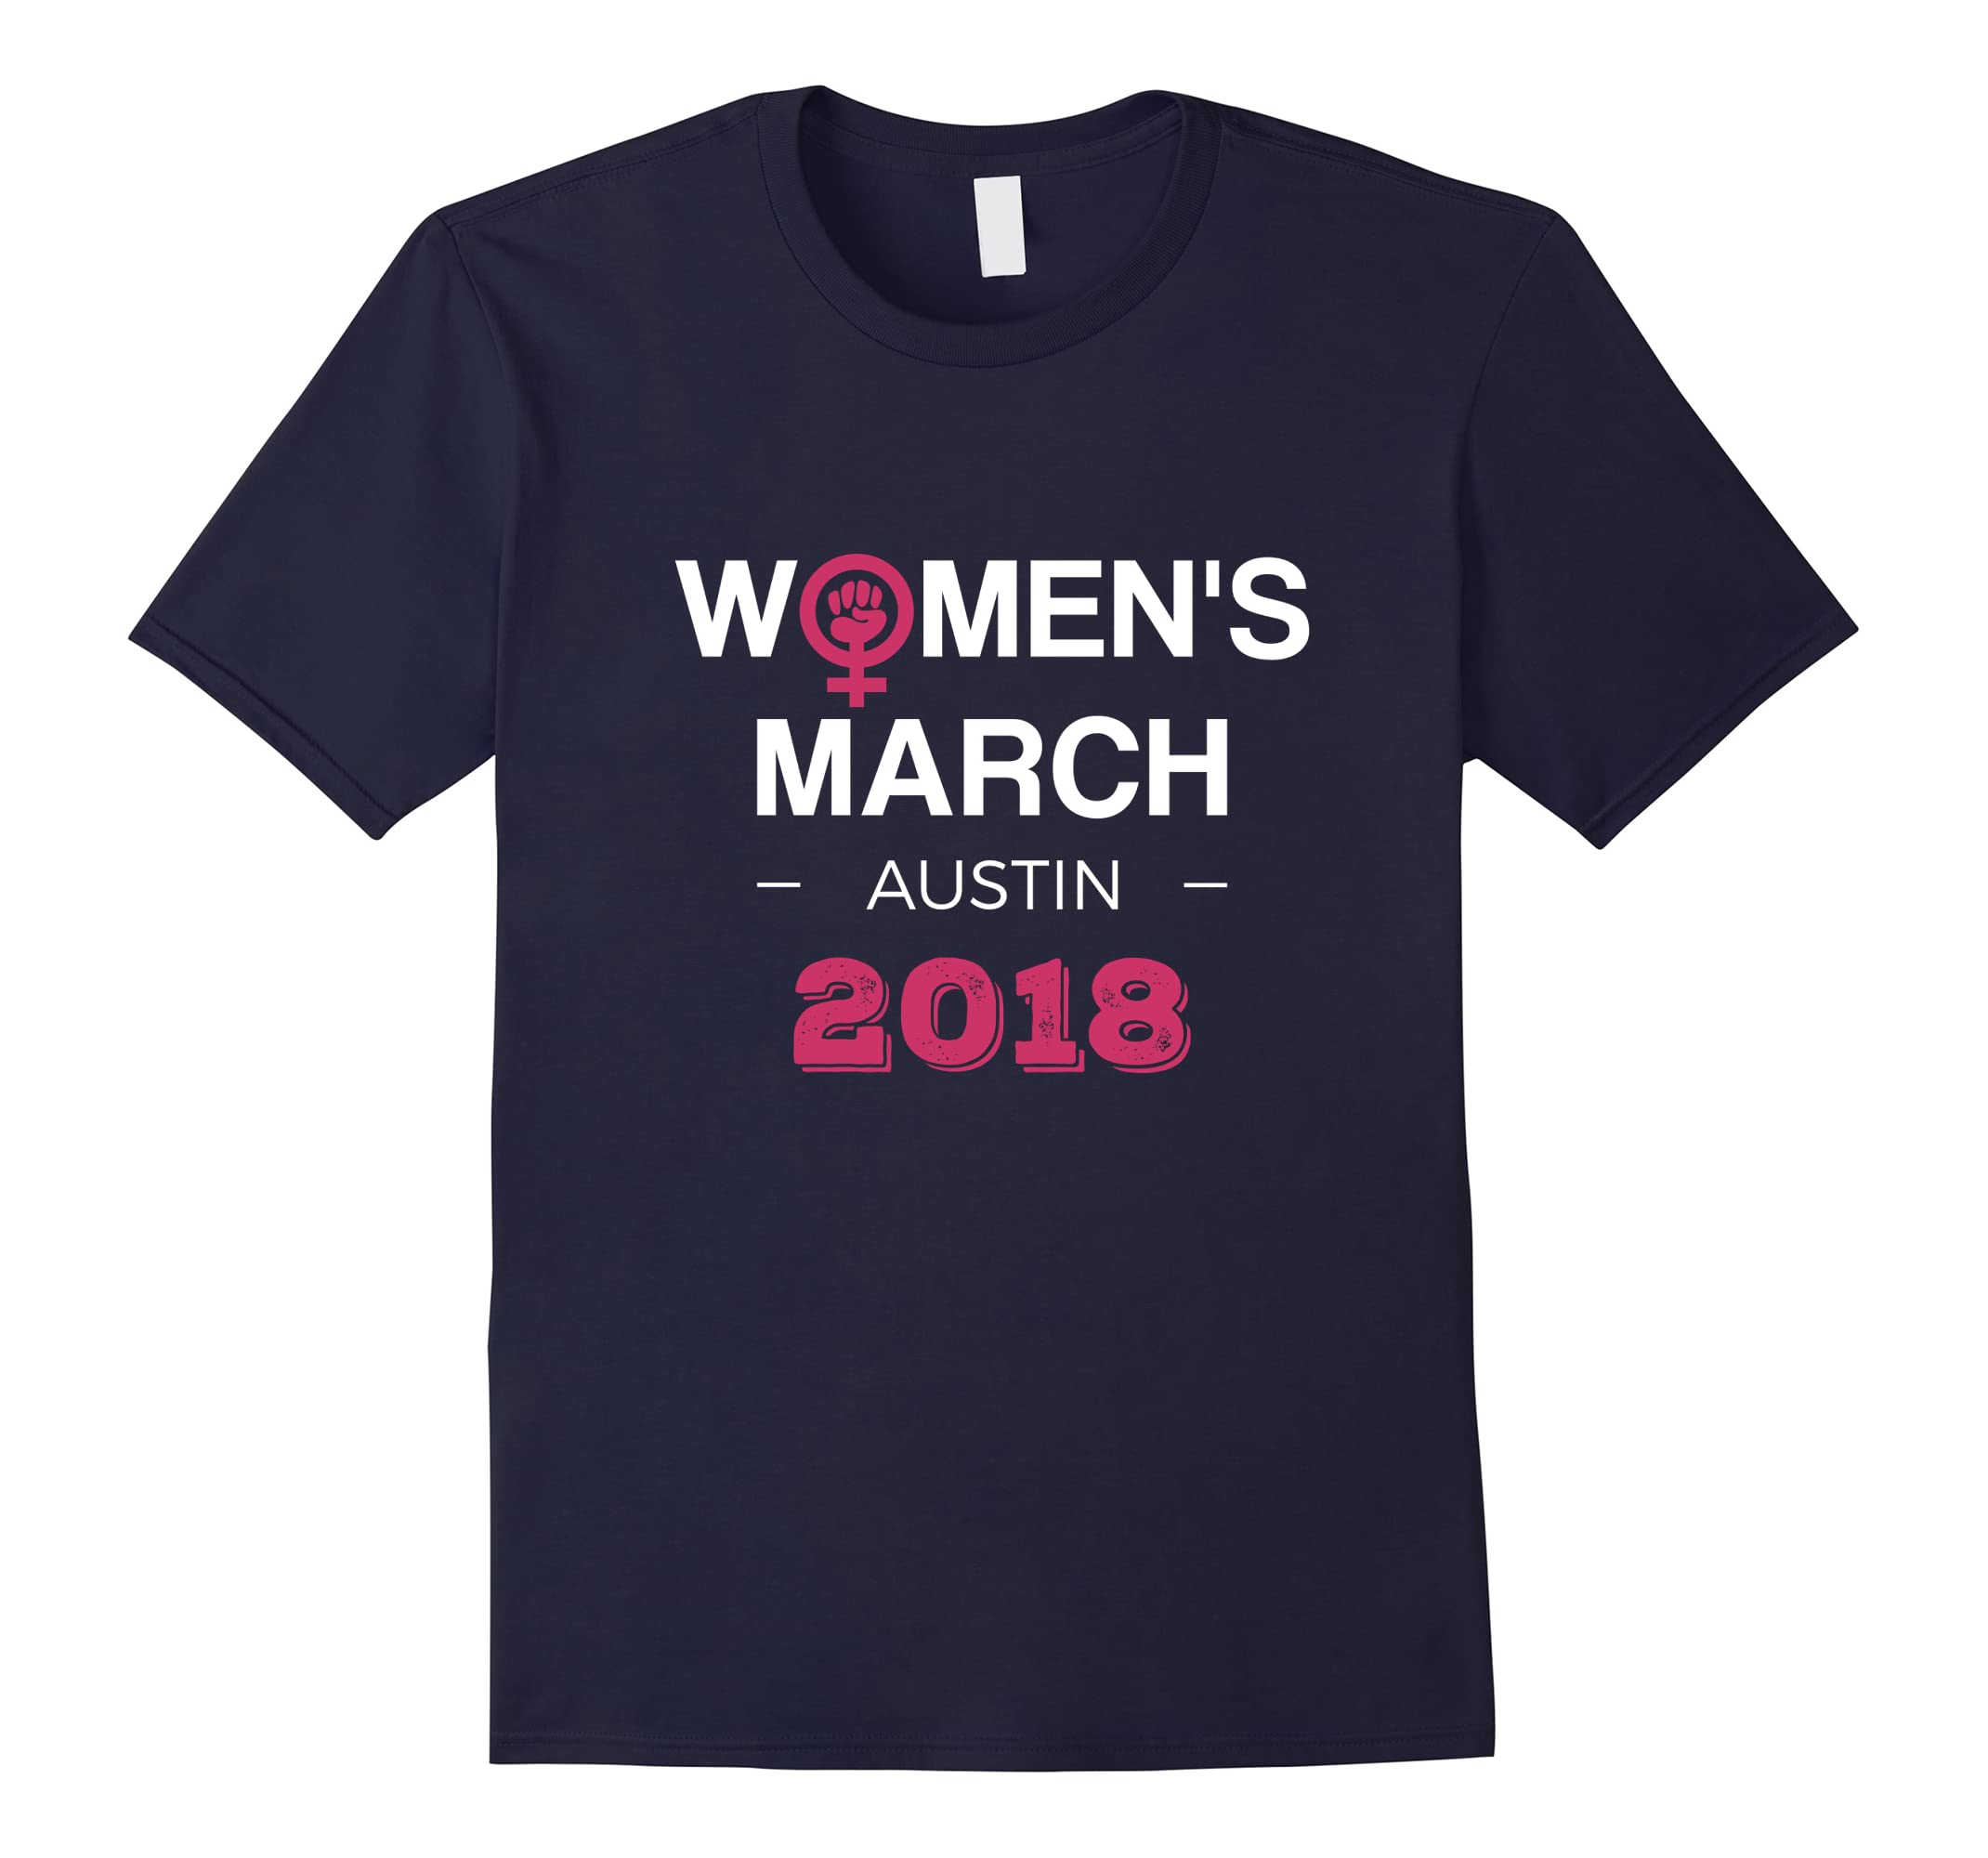 Austin Women's March 2018 T-shirt Feminism Symbol Design-RT